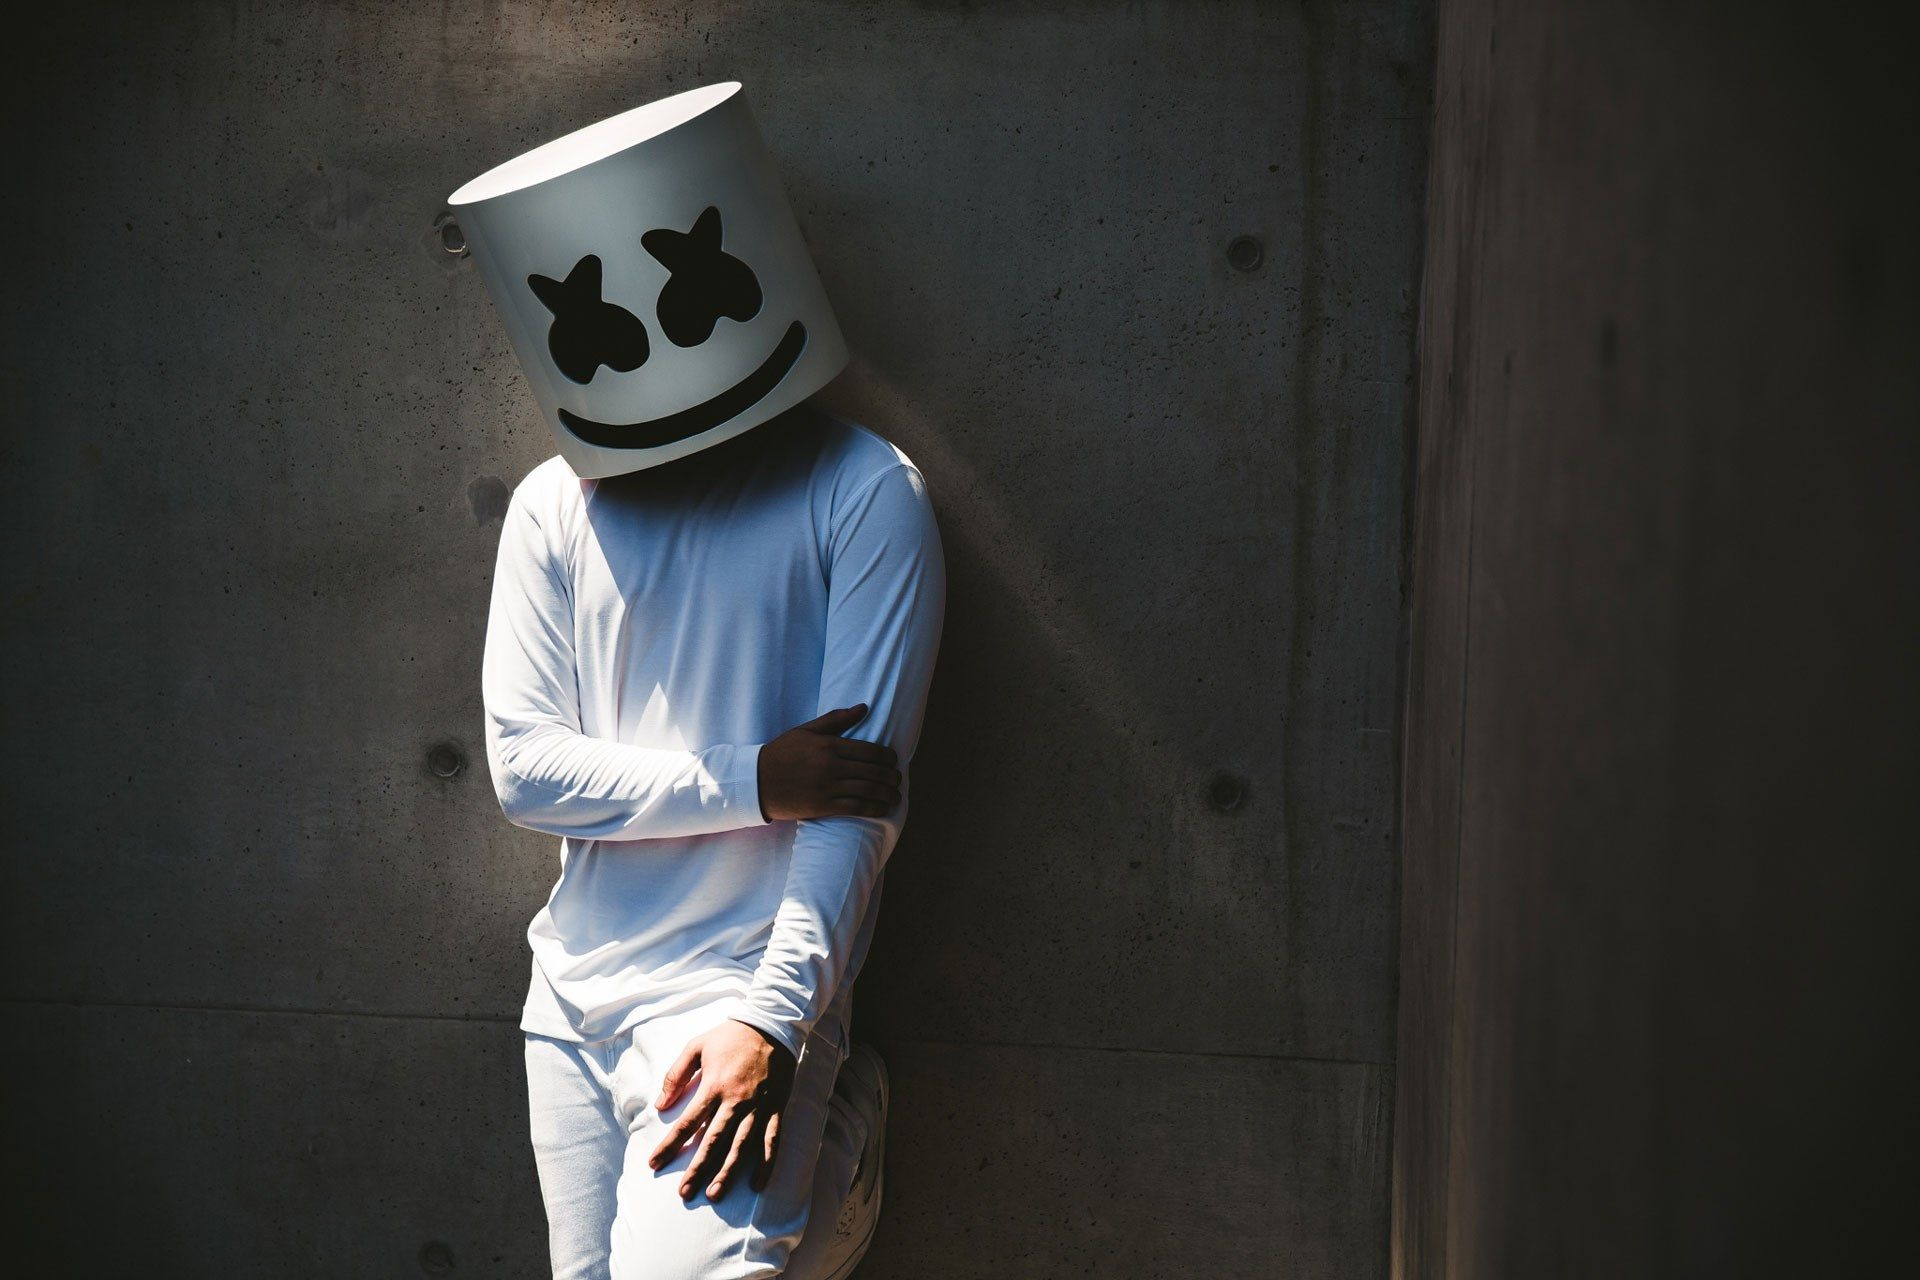 1920x1280 marshmello hd background wallpaper free download